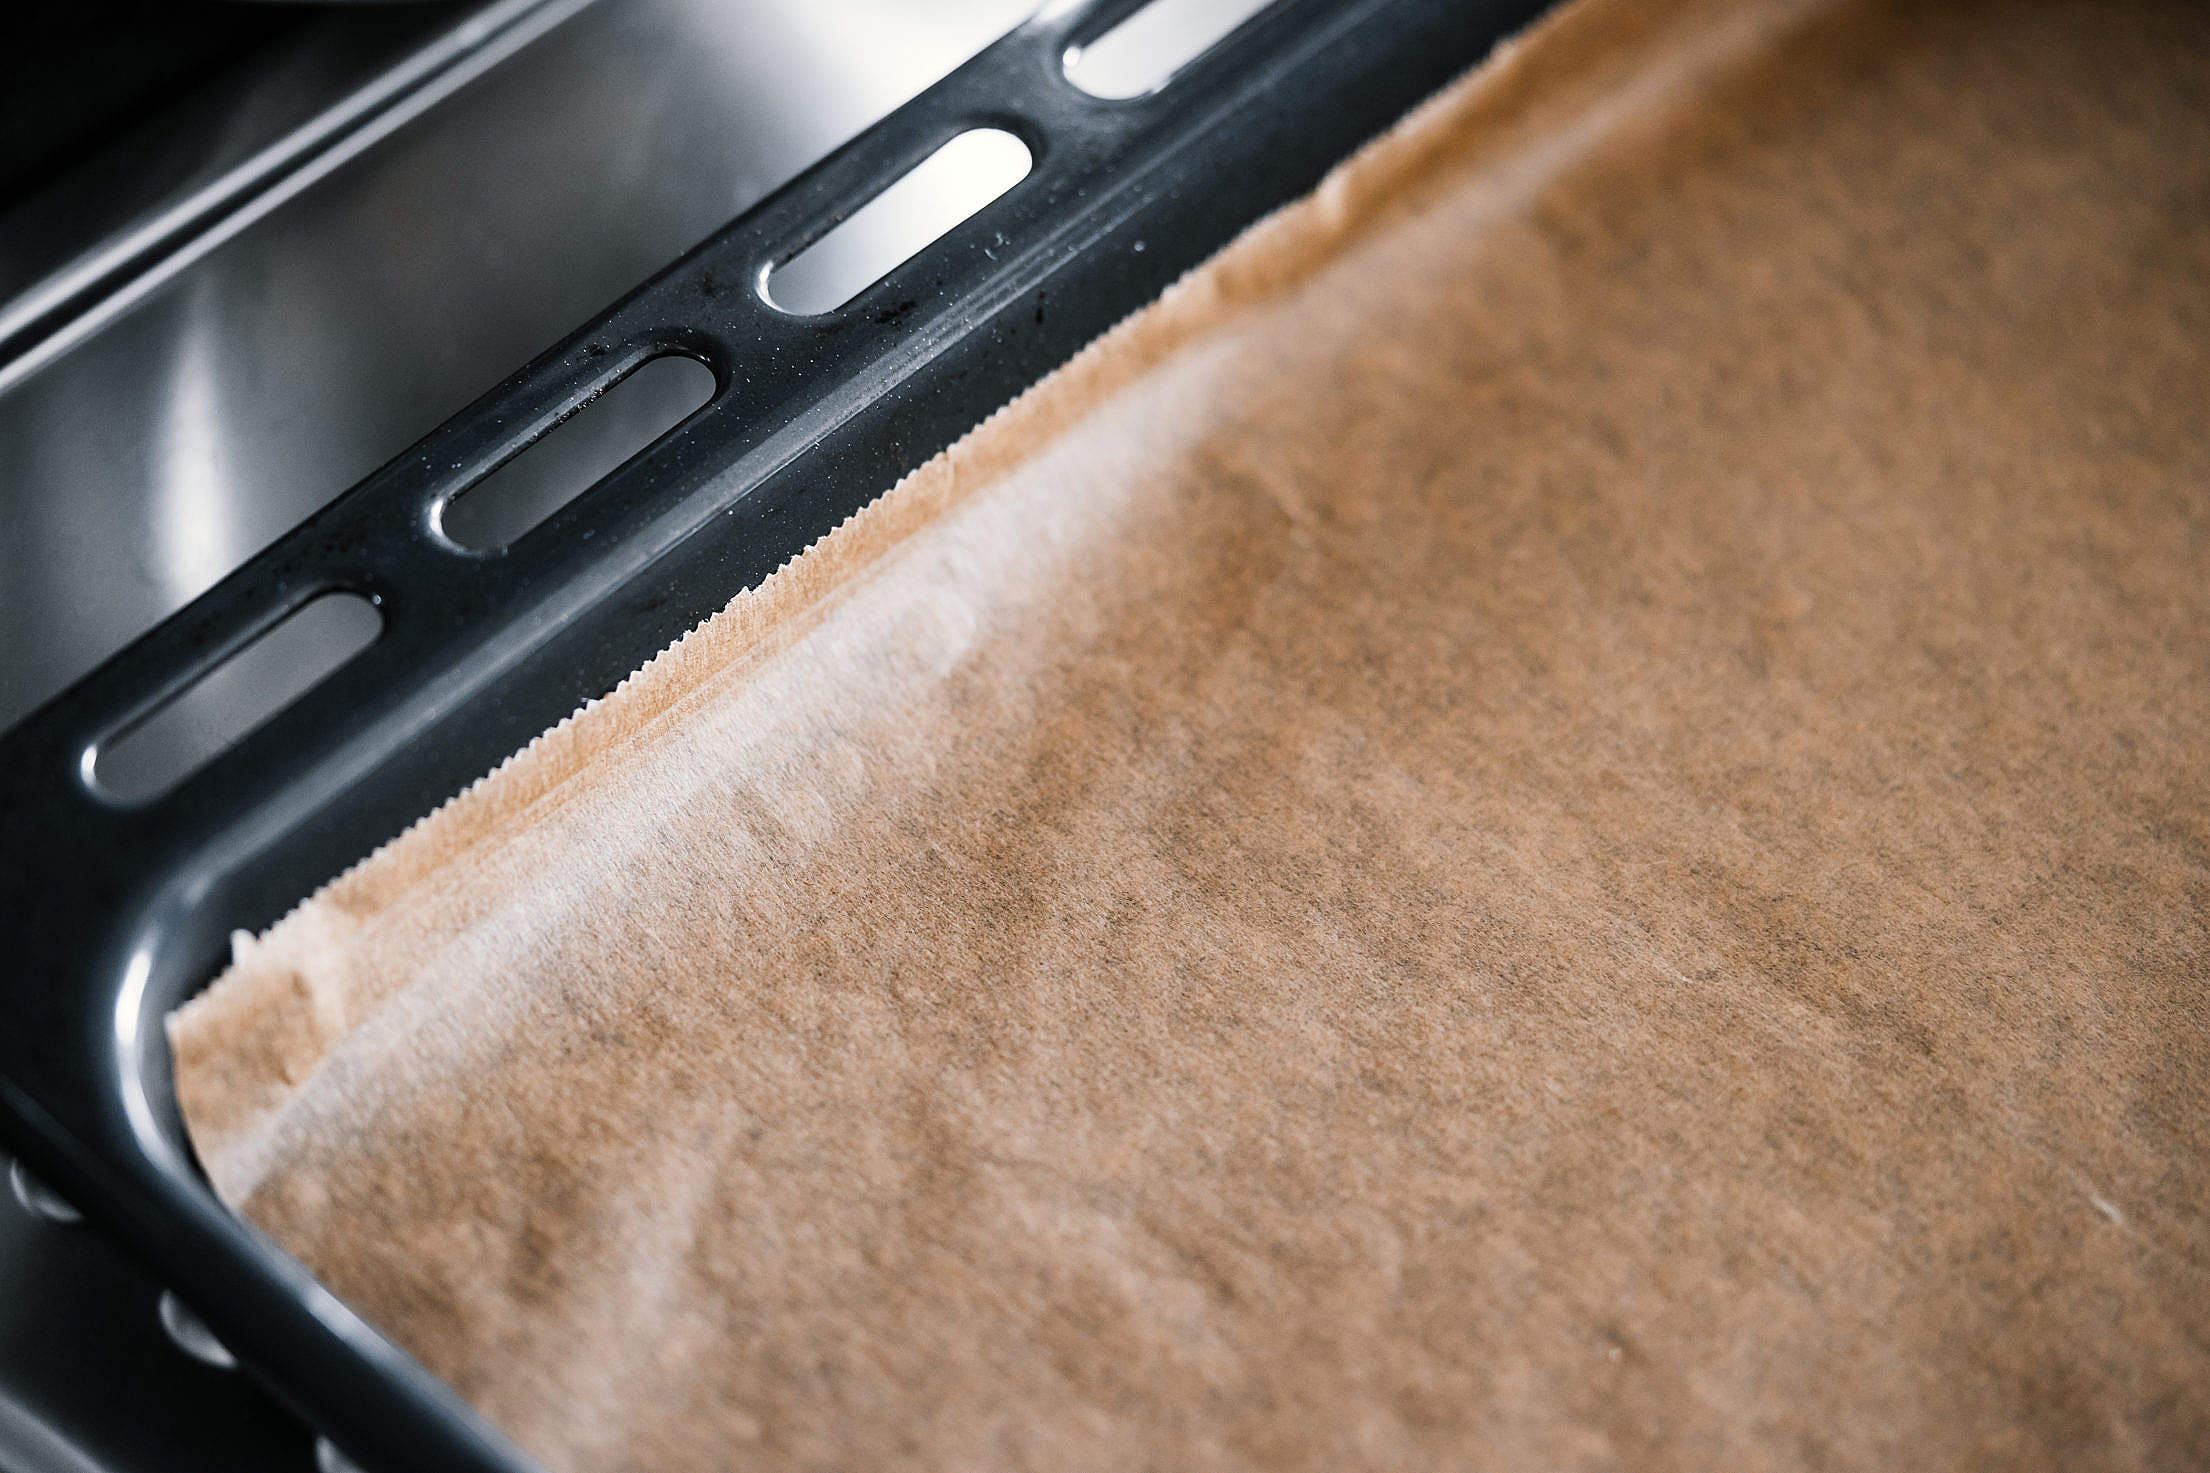 Baking Tray with Parchment Paper Free Stock Photo